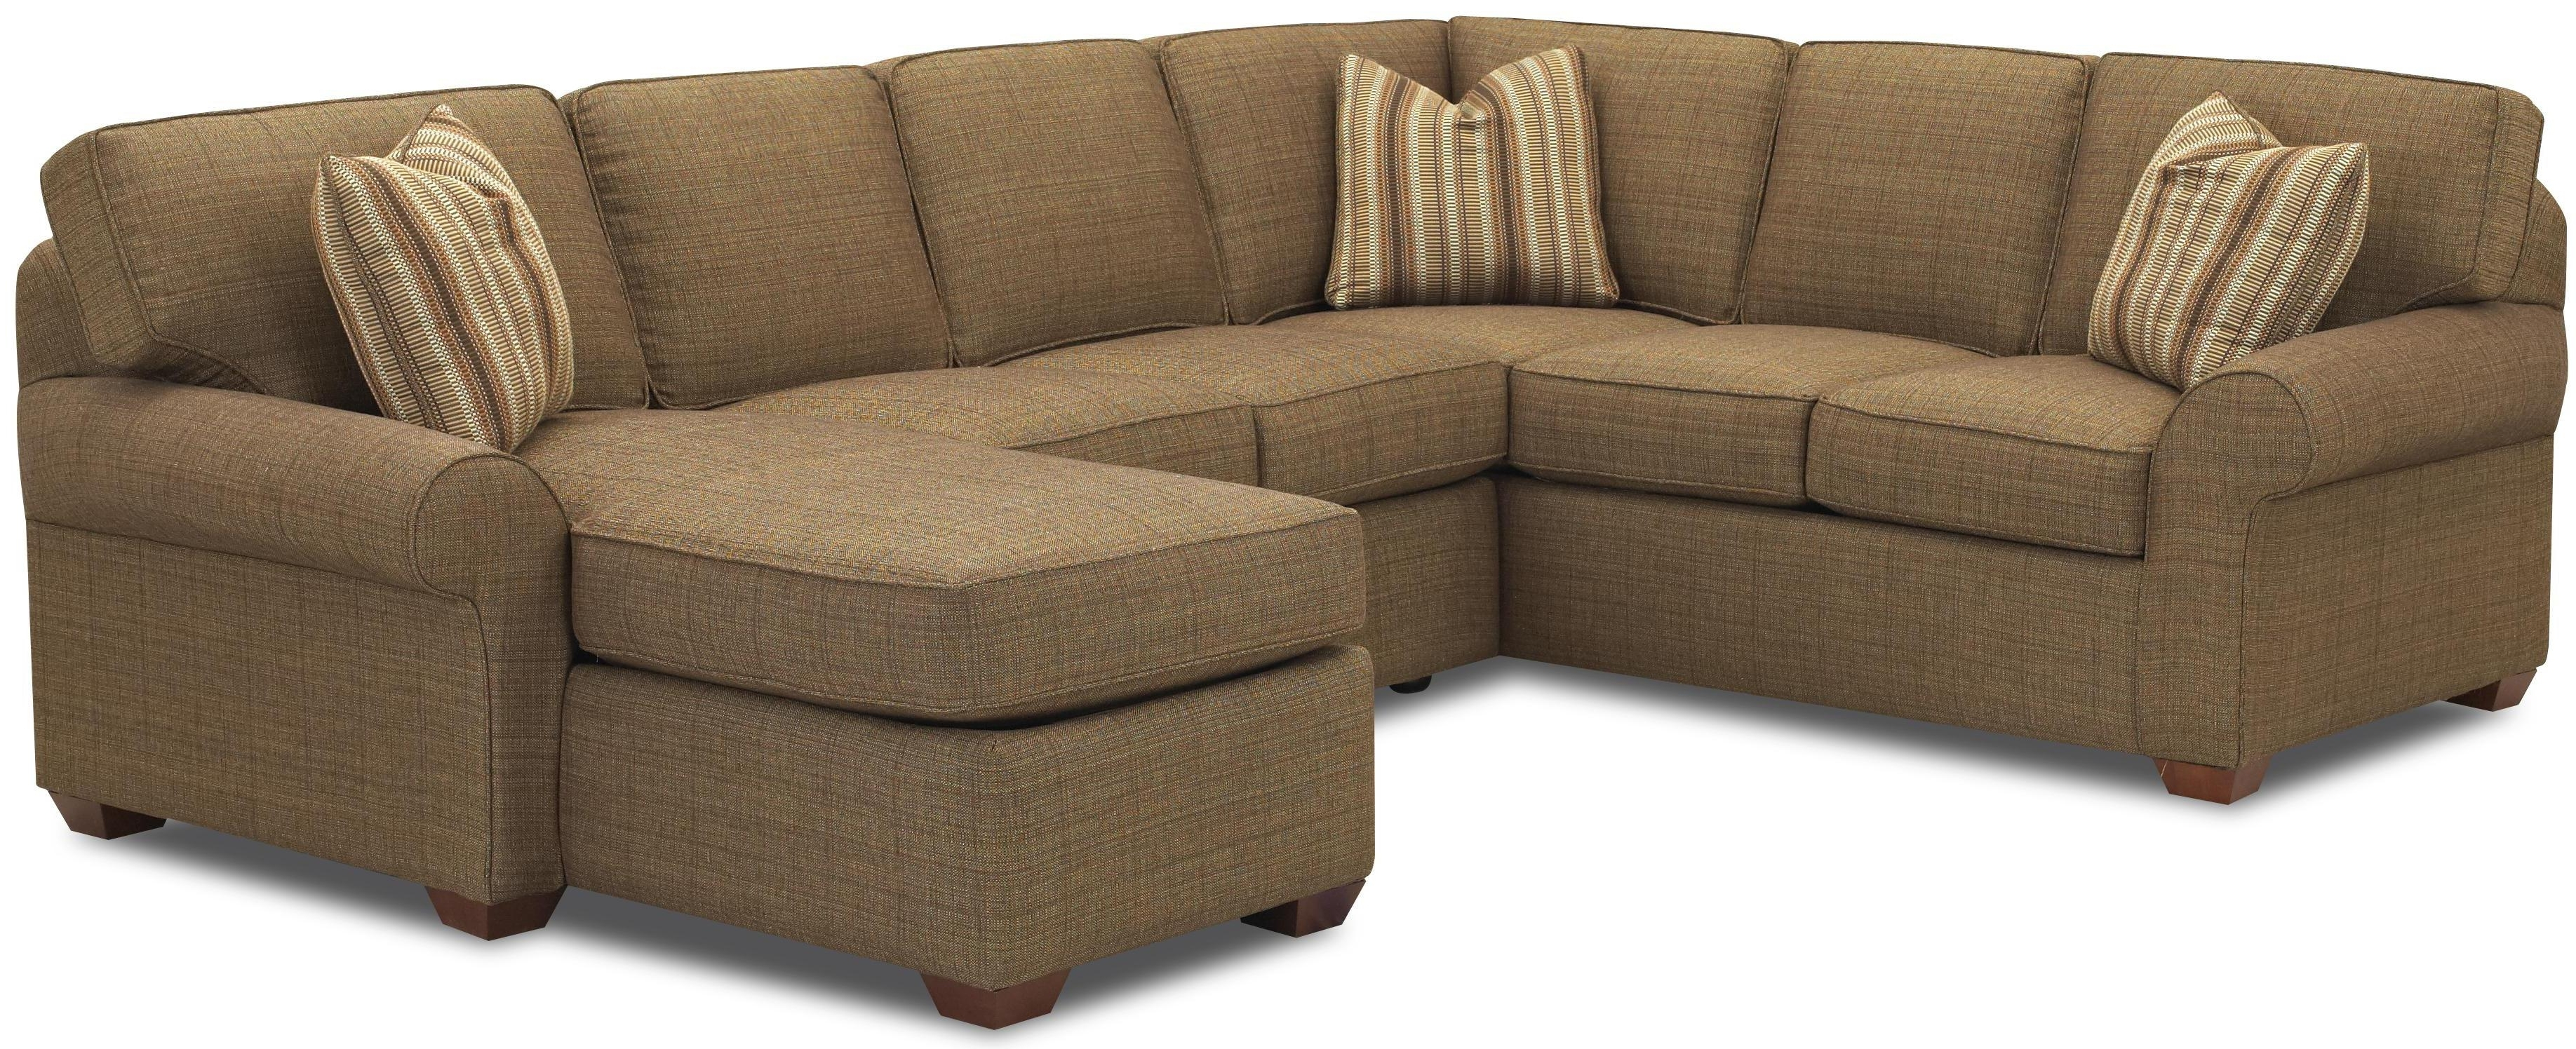 Klaussner Patterns Sectional Sofa Group With Right Chaise Lounge With Regard To Most Popular Loveseat Chaise Lounges (View 8 of 15)